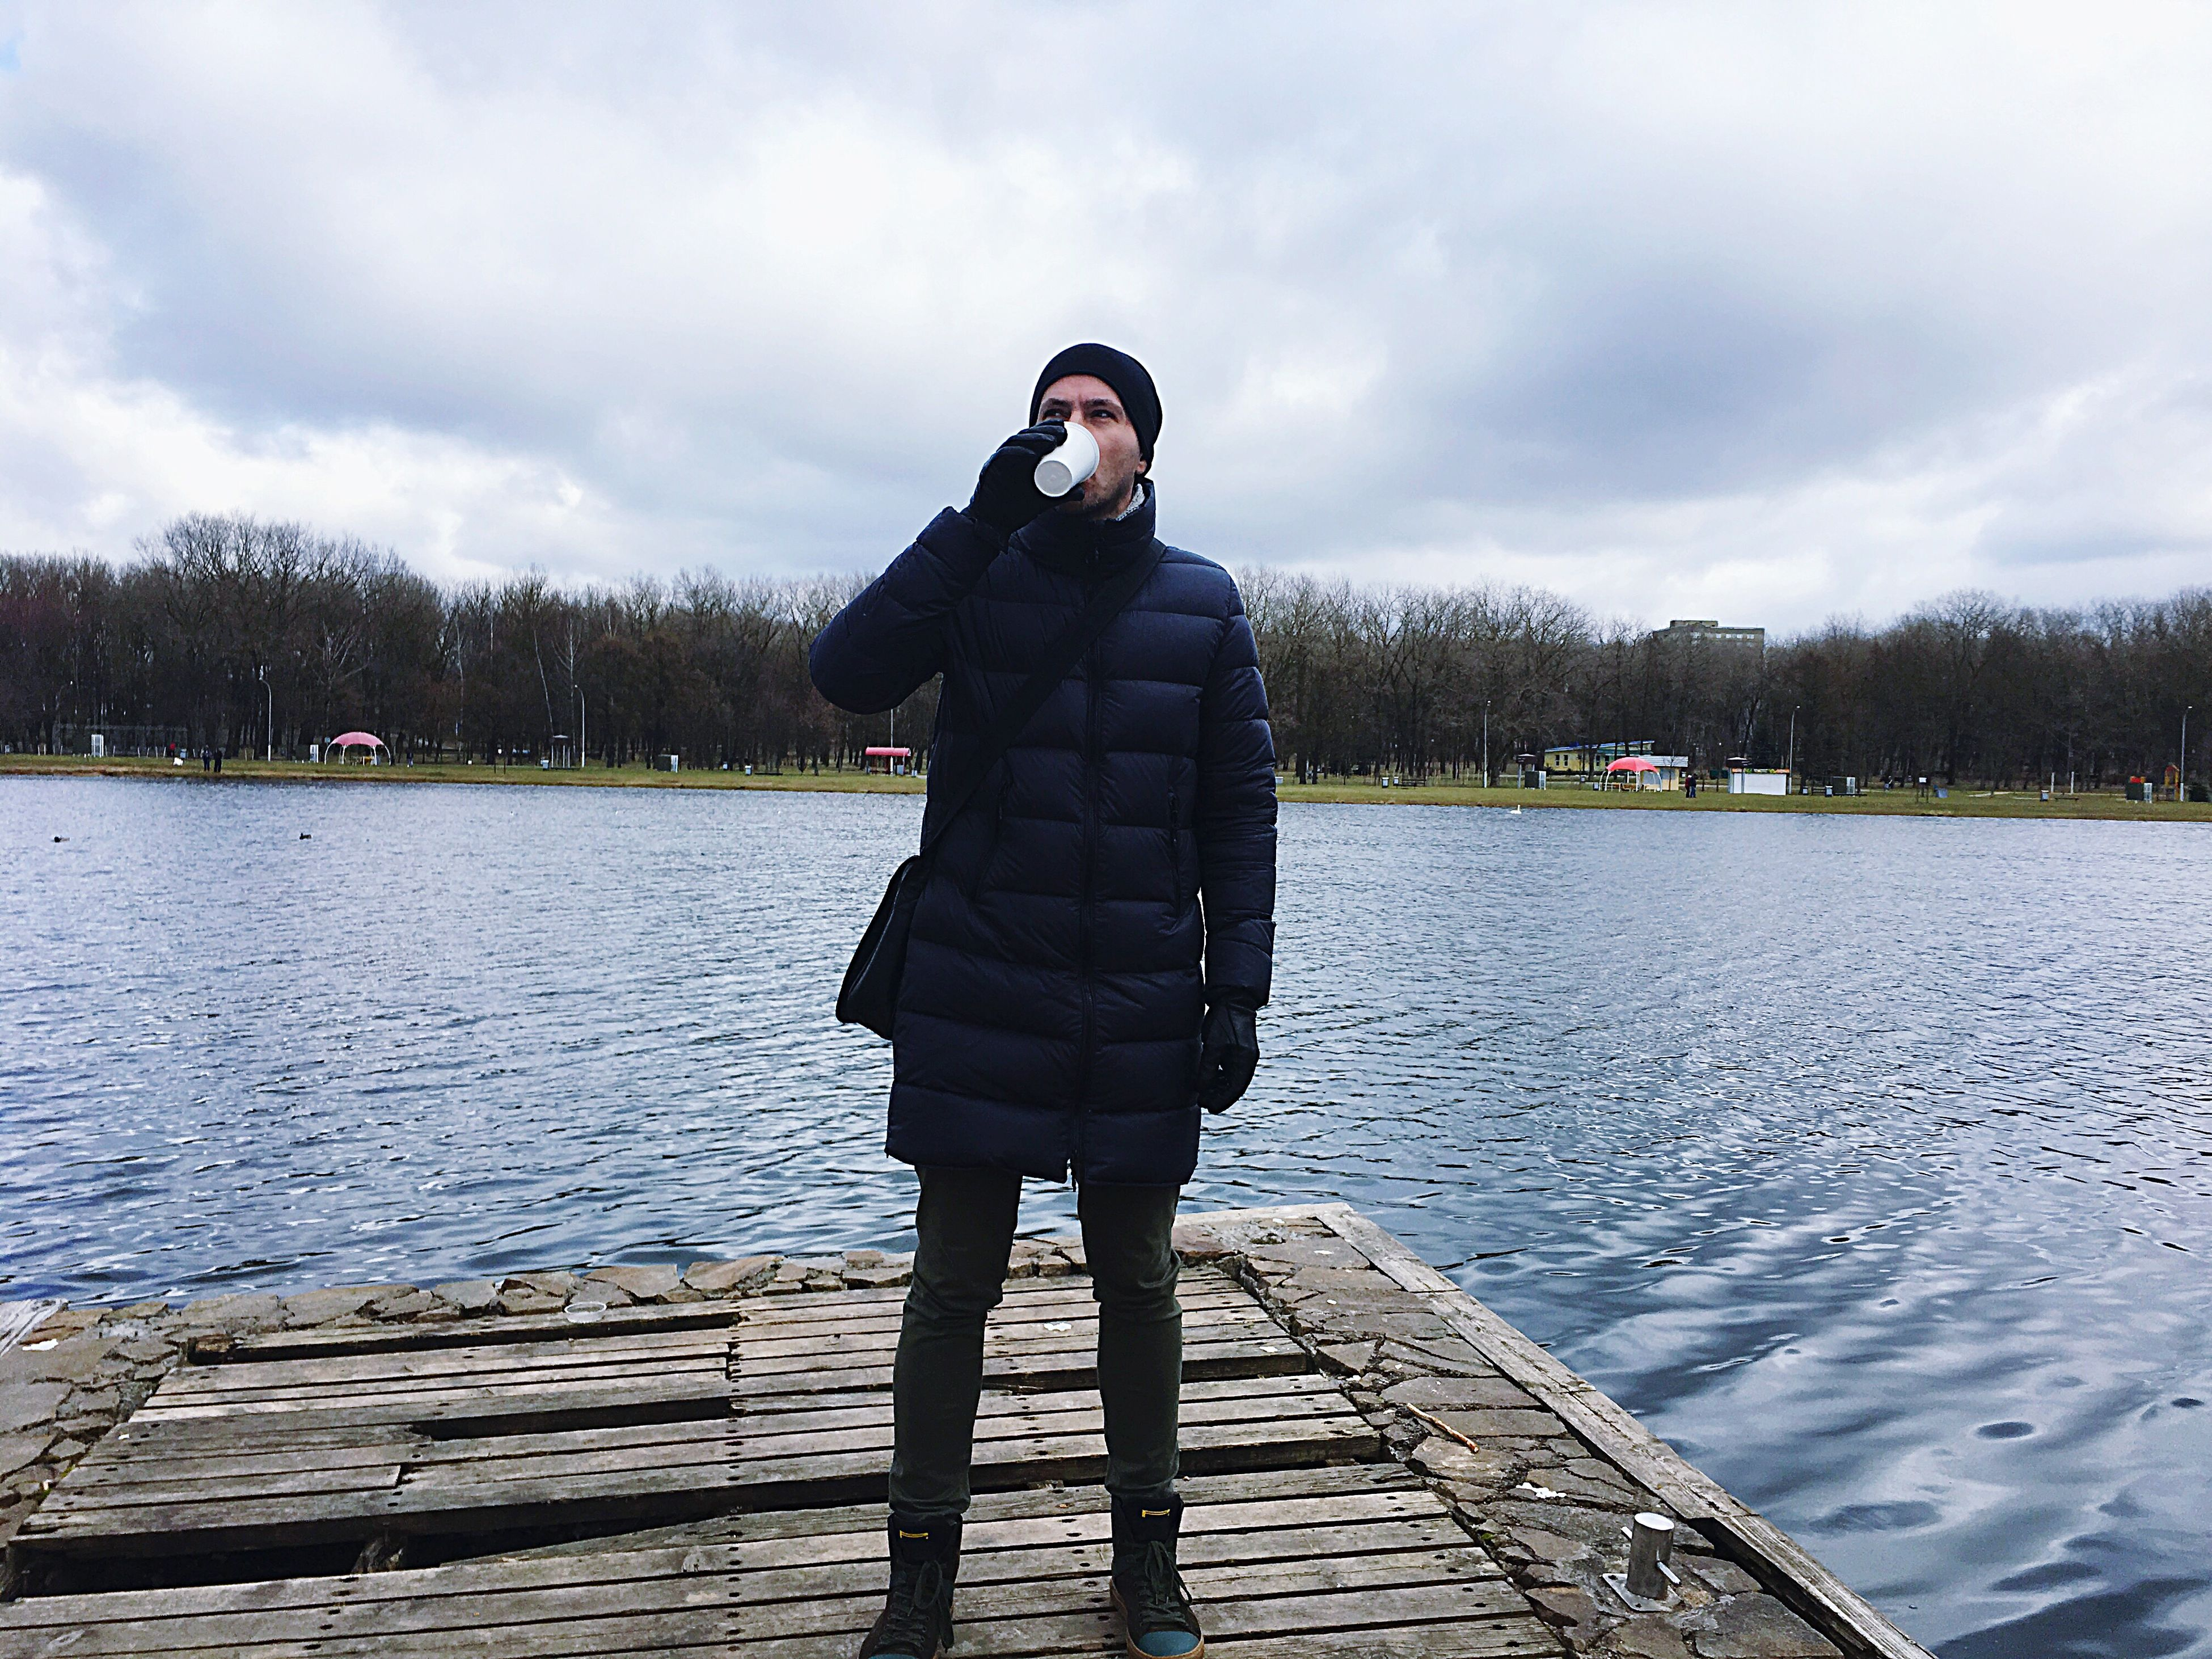 one man only, one person, lake, only men, adults only, reflection, people, men, environment, water, nature, adult, young adult, outdoors, day, warm clothing, sky